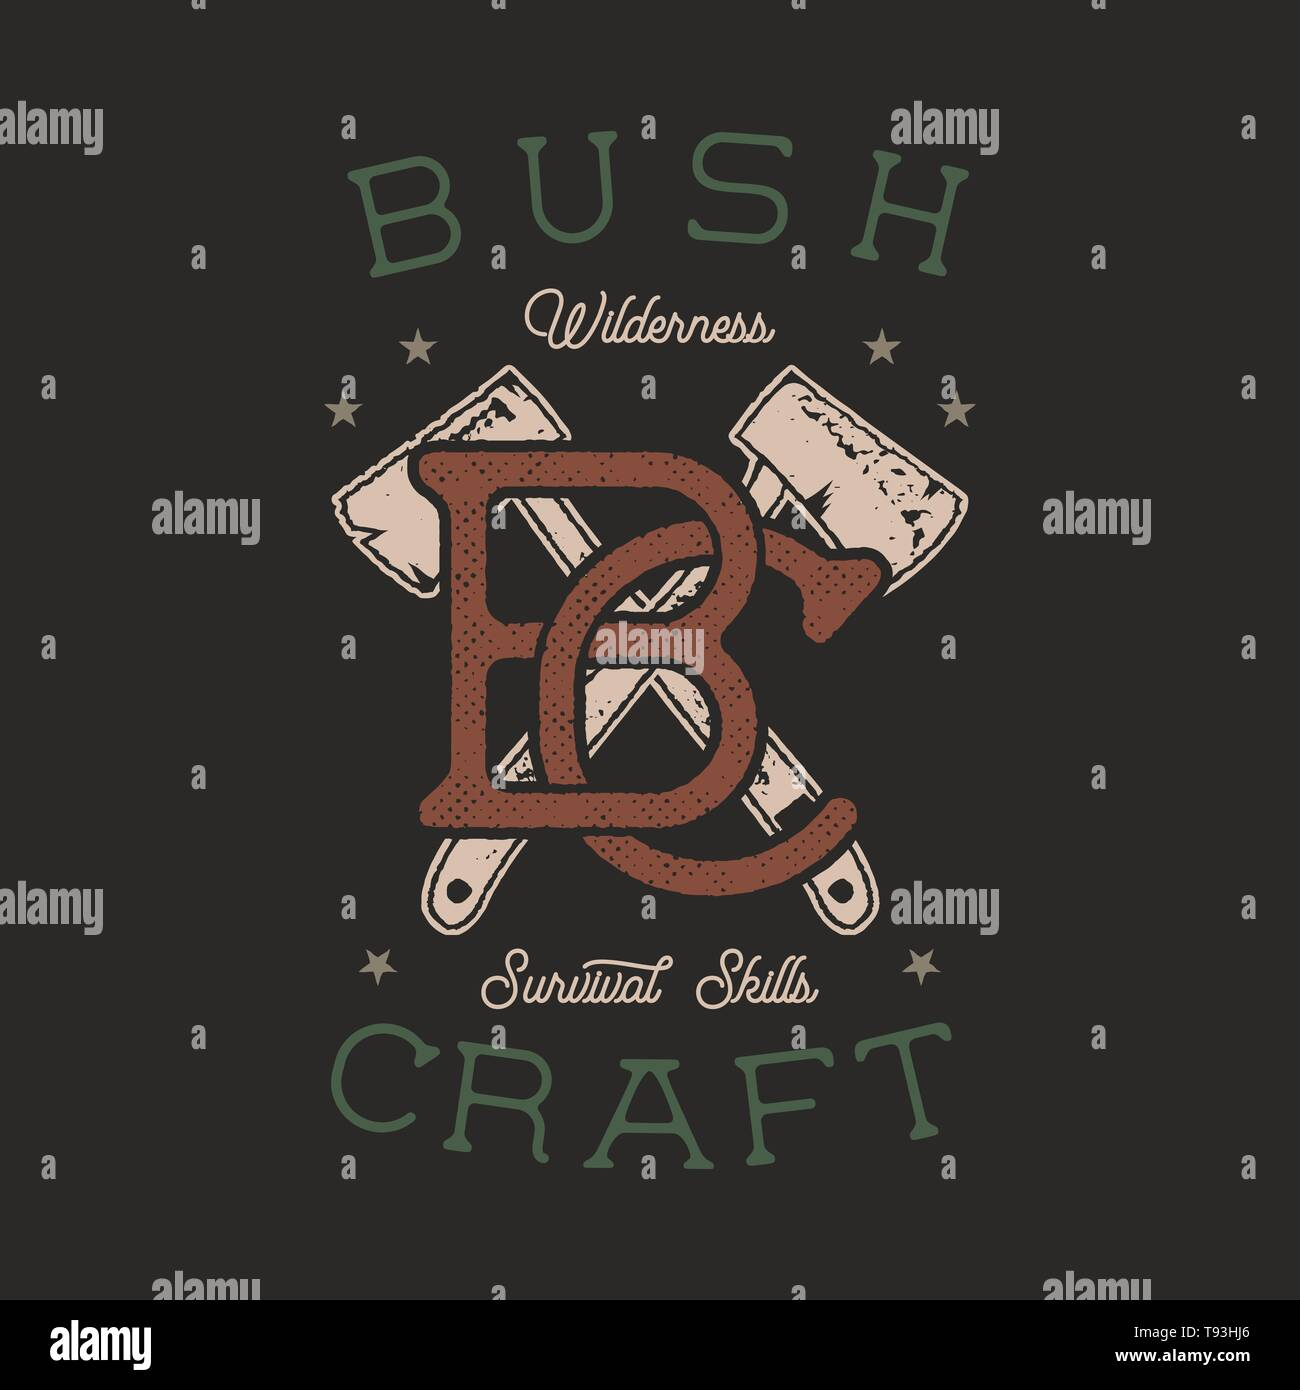 Vintage hand drawn adventure logo with axes and quote - Bushcraft Wilderness survivals skills. Old style outdoors adventure patch. Retro typography em - Stock Image